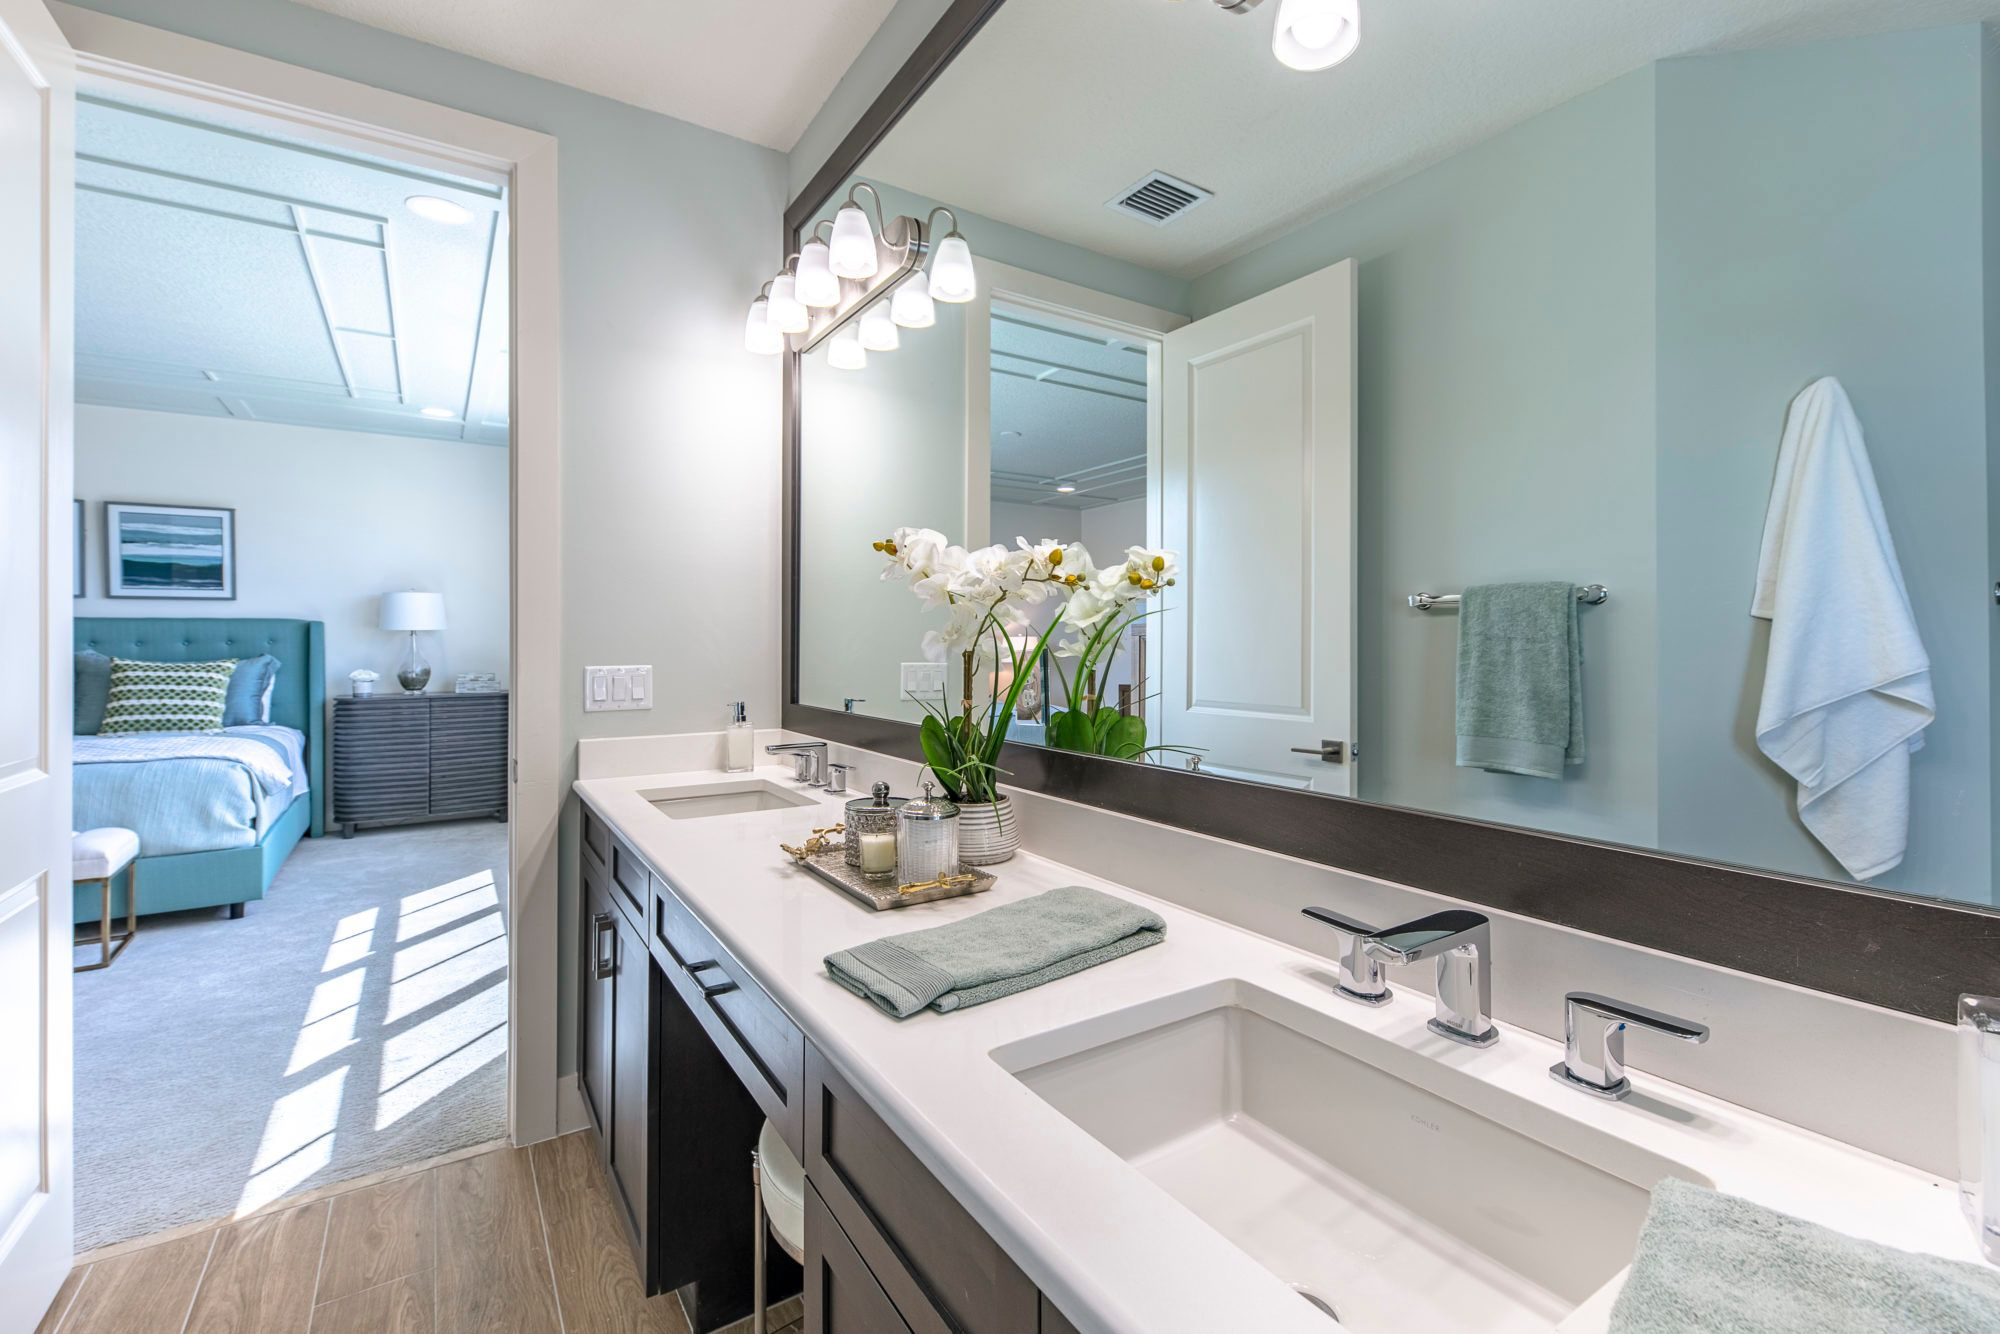 Bathroom featured in the Sancia By 5 Star Development in Palm Beach County, FL